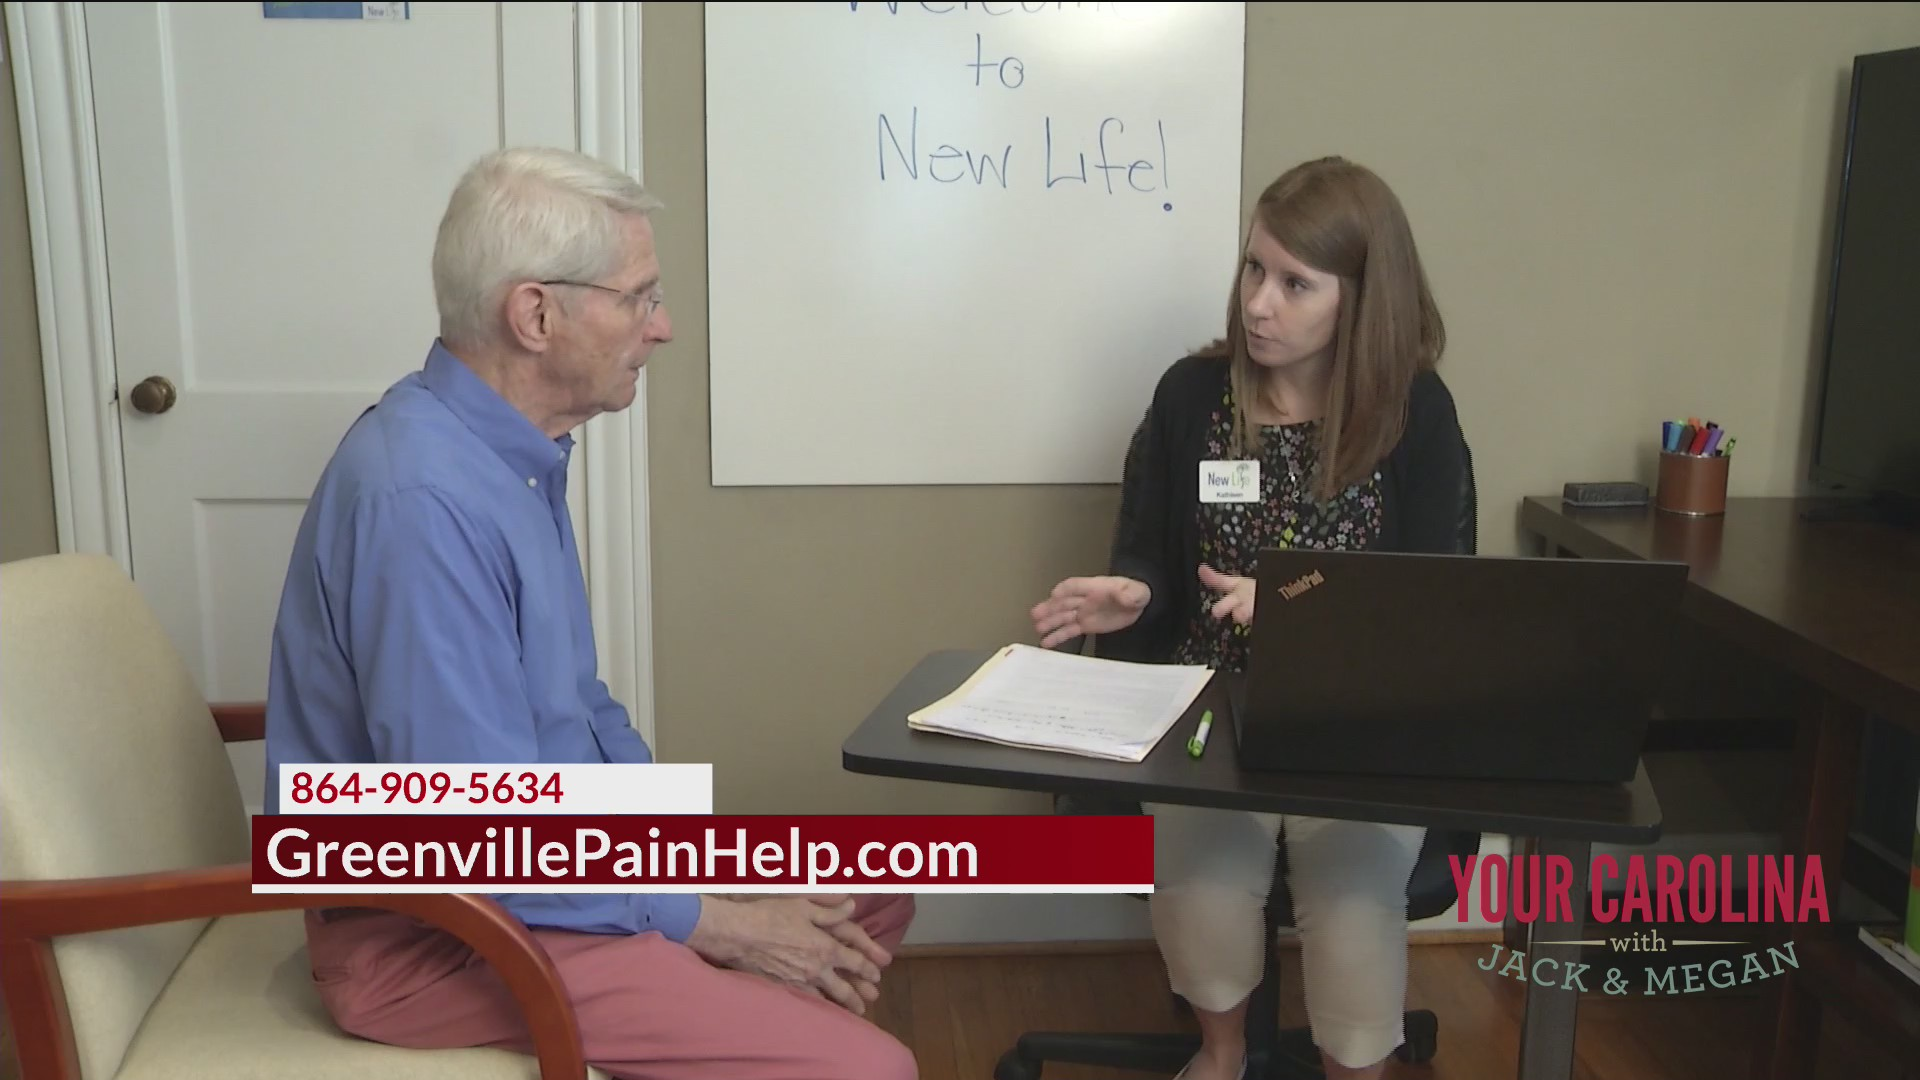 New Life Medical Centers - Hope For People Suffering From Neuropathy